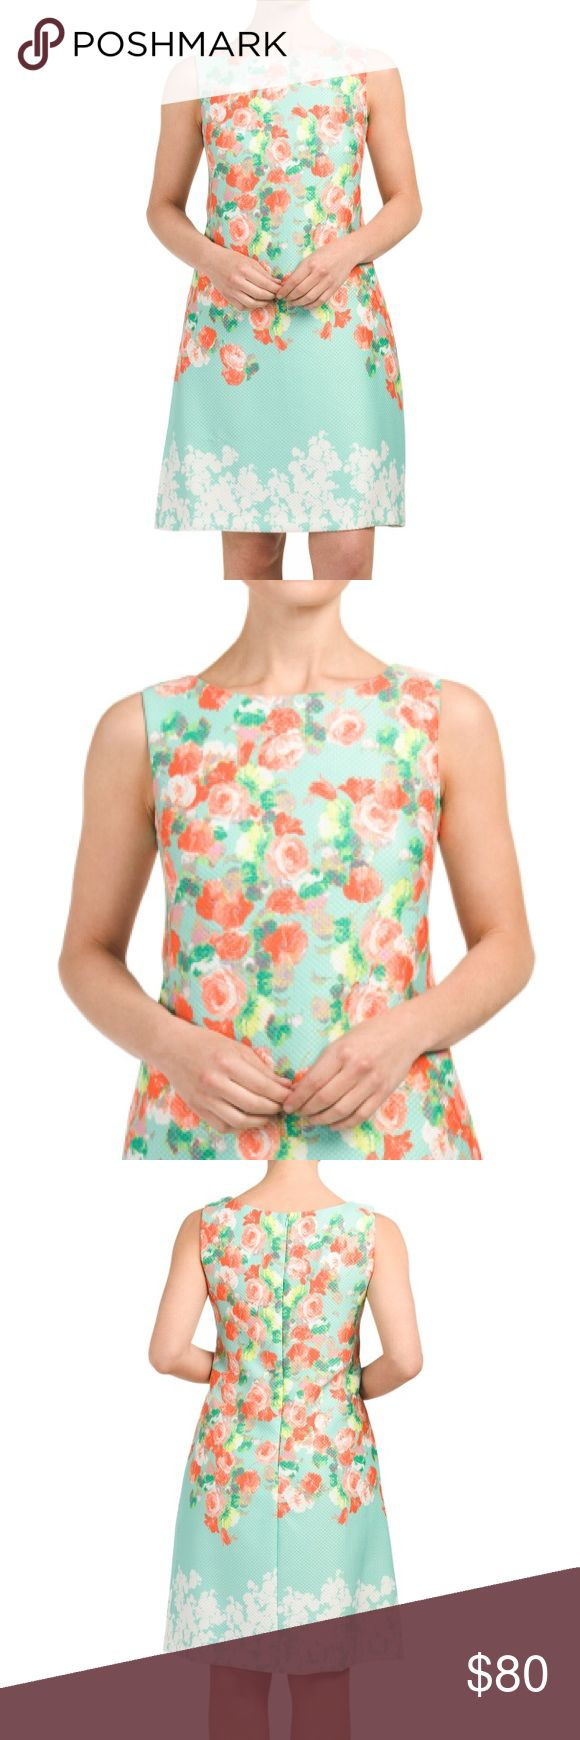 !SPRING SALE! Donna Ricco Floral Pattern Dress Spring is here ladies and this amazing dress will get you lots of compliments. Sleeveless with Pastel colors and floral design. 🚫No trades🚫🔸Price Firm🔸 Donna Ricco Dresses Mini